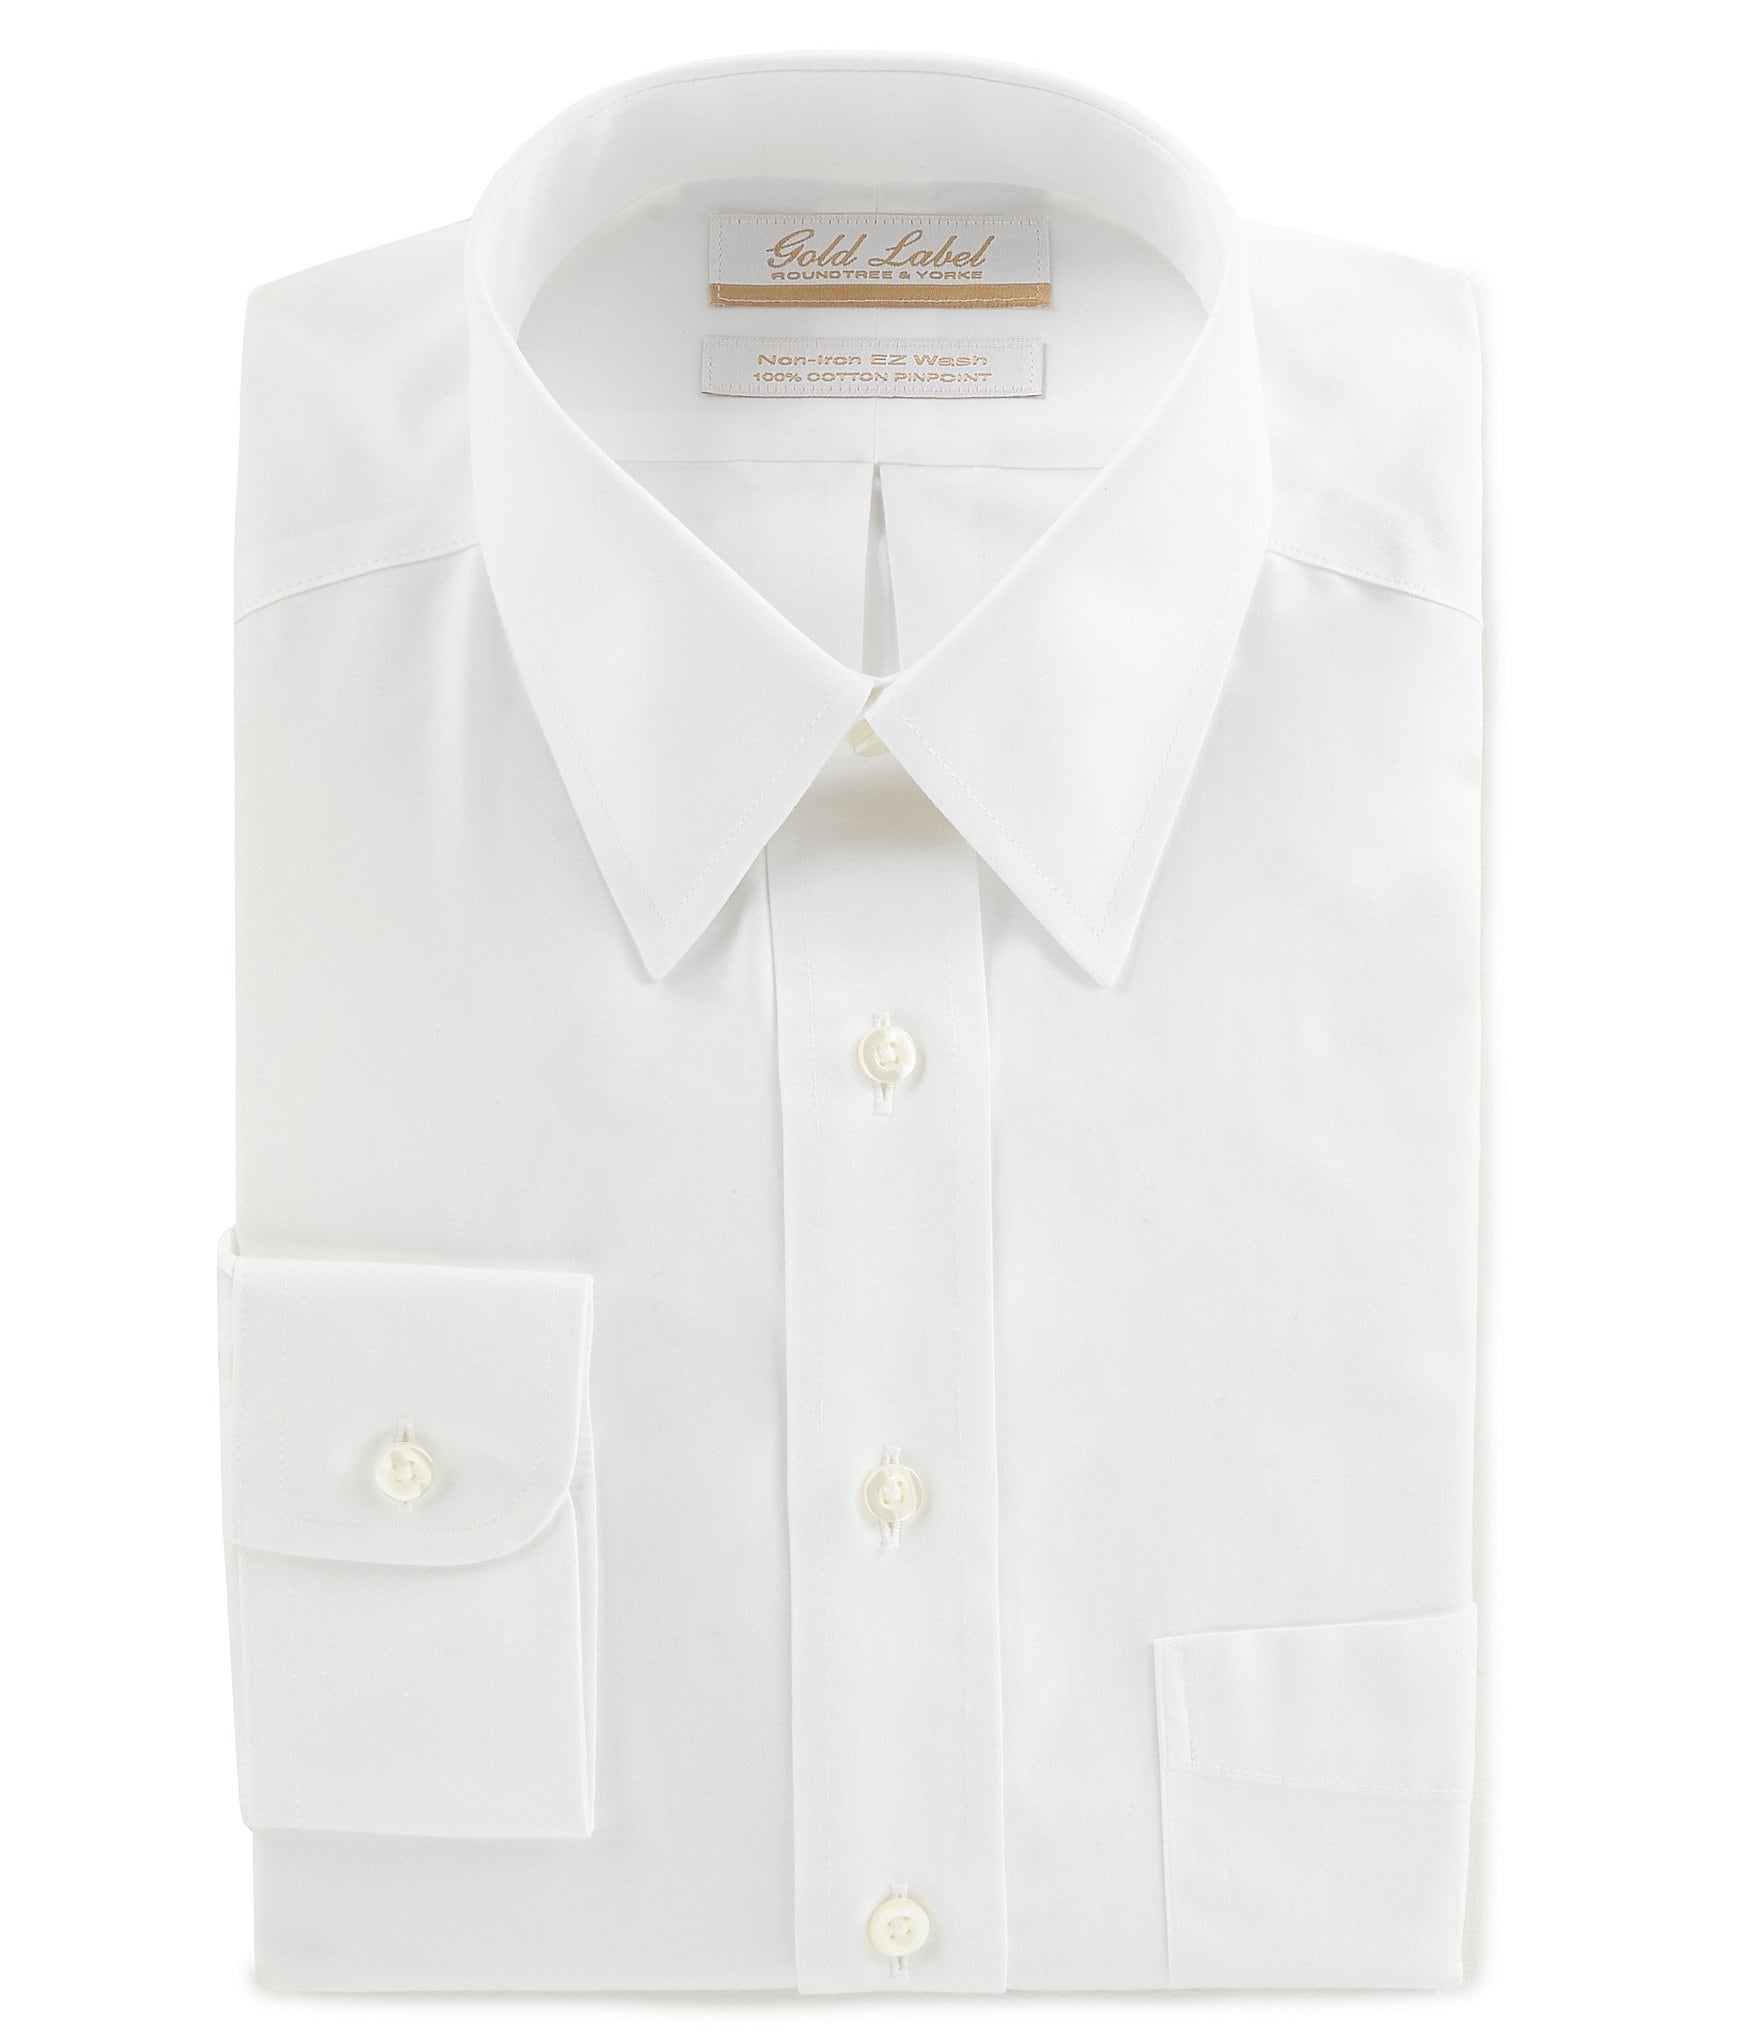 Mens Dress Shirts Dillards